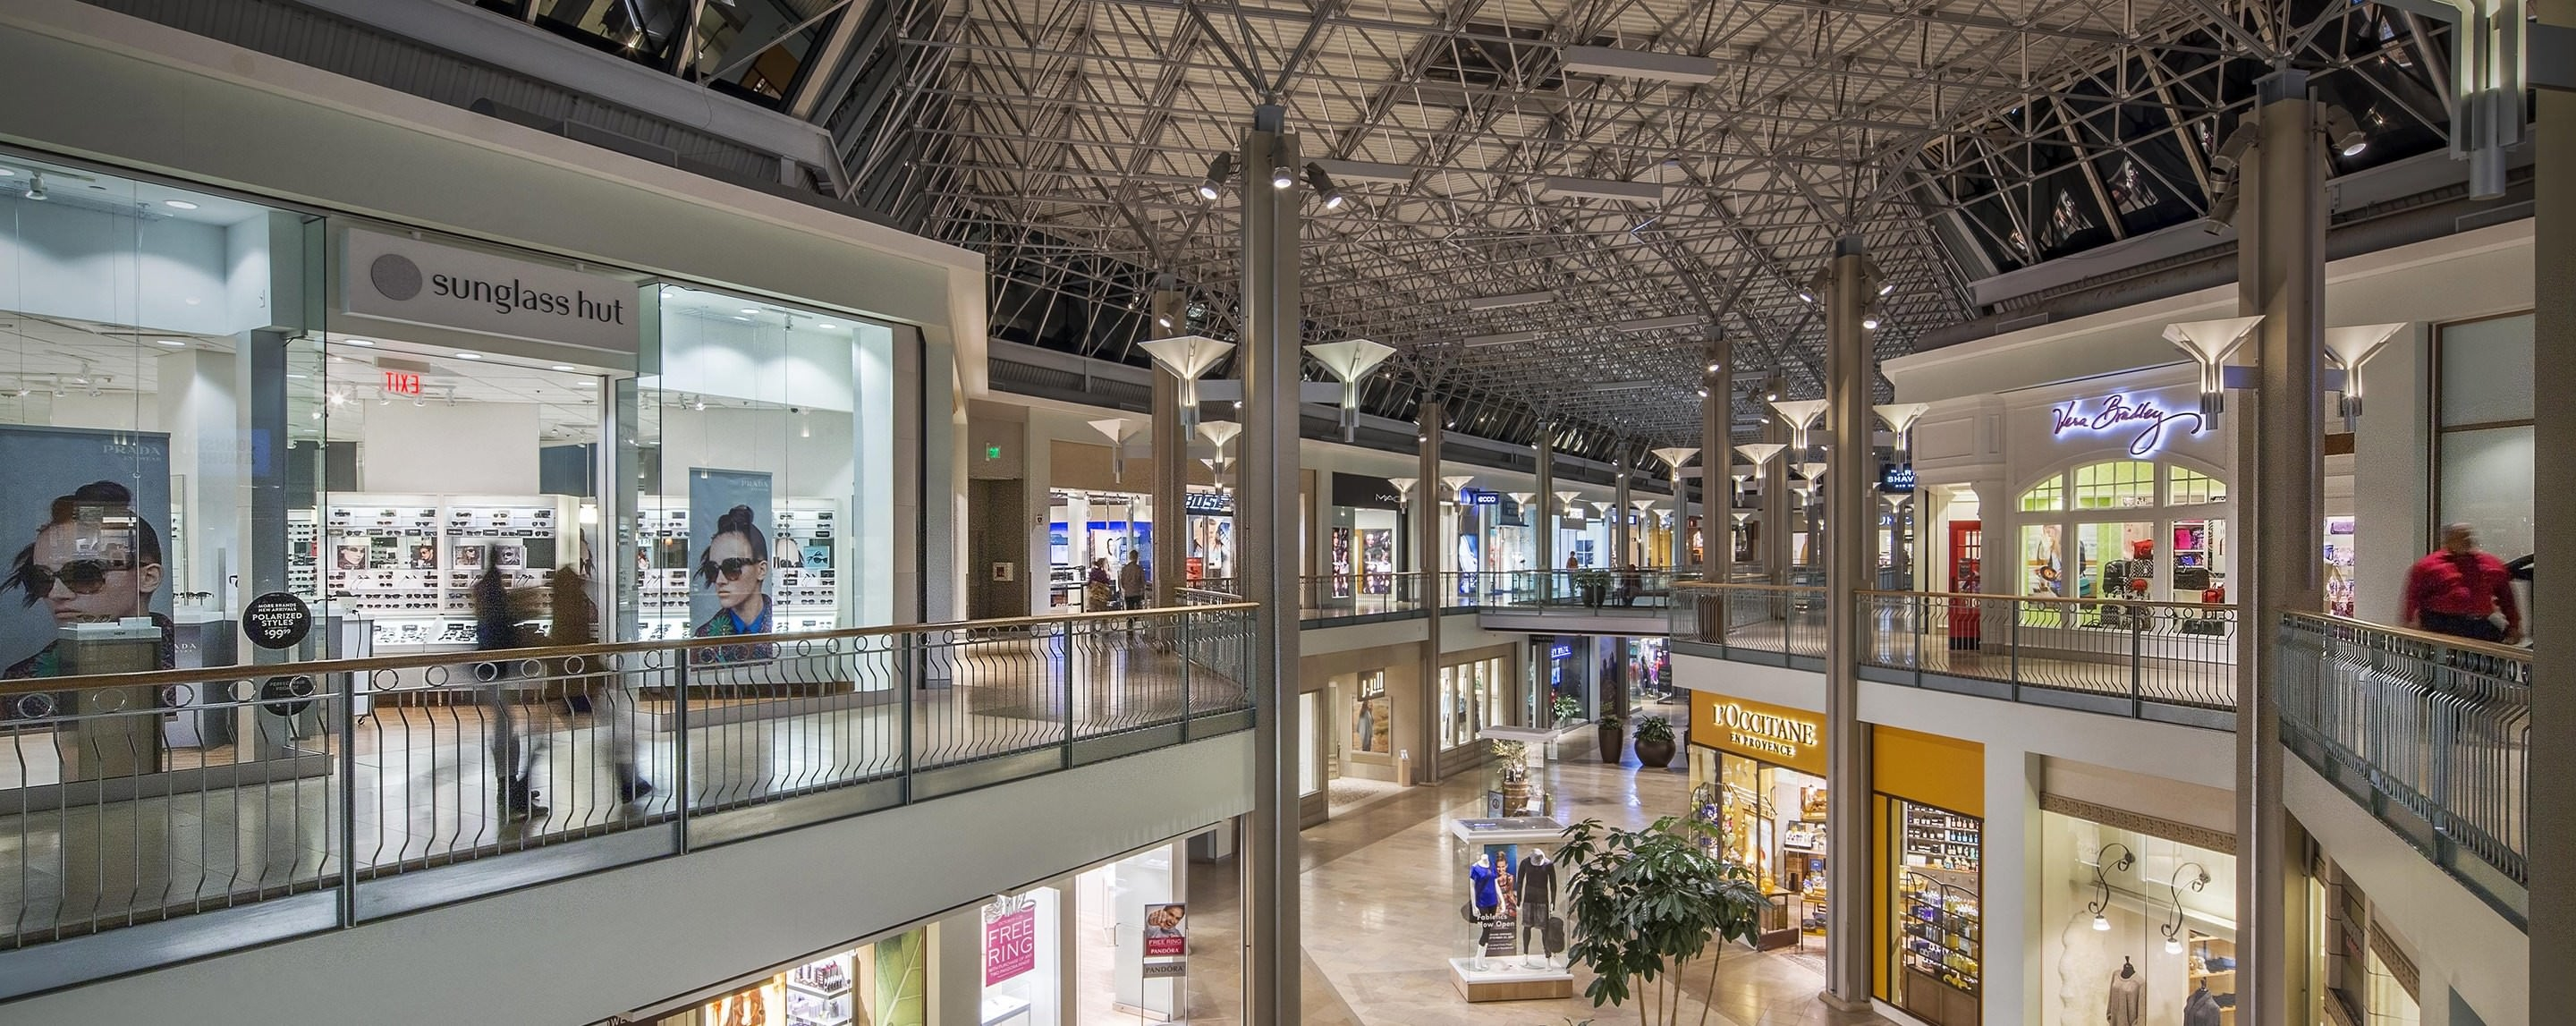 The Mall in Columbia, also known as the Columbia Mall, is the central shopping mall for the planned community of Columbia, Maryland, United States. It has five anchor department stores (Sears, JCPenney, Nordstrom, Macy's, and Lord & Taylor) and over specialty stores.